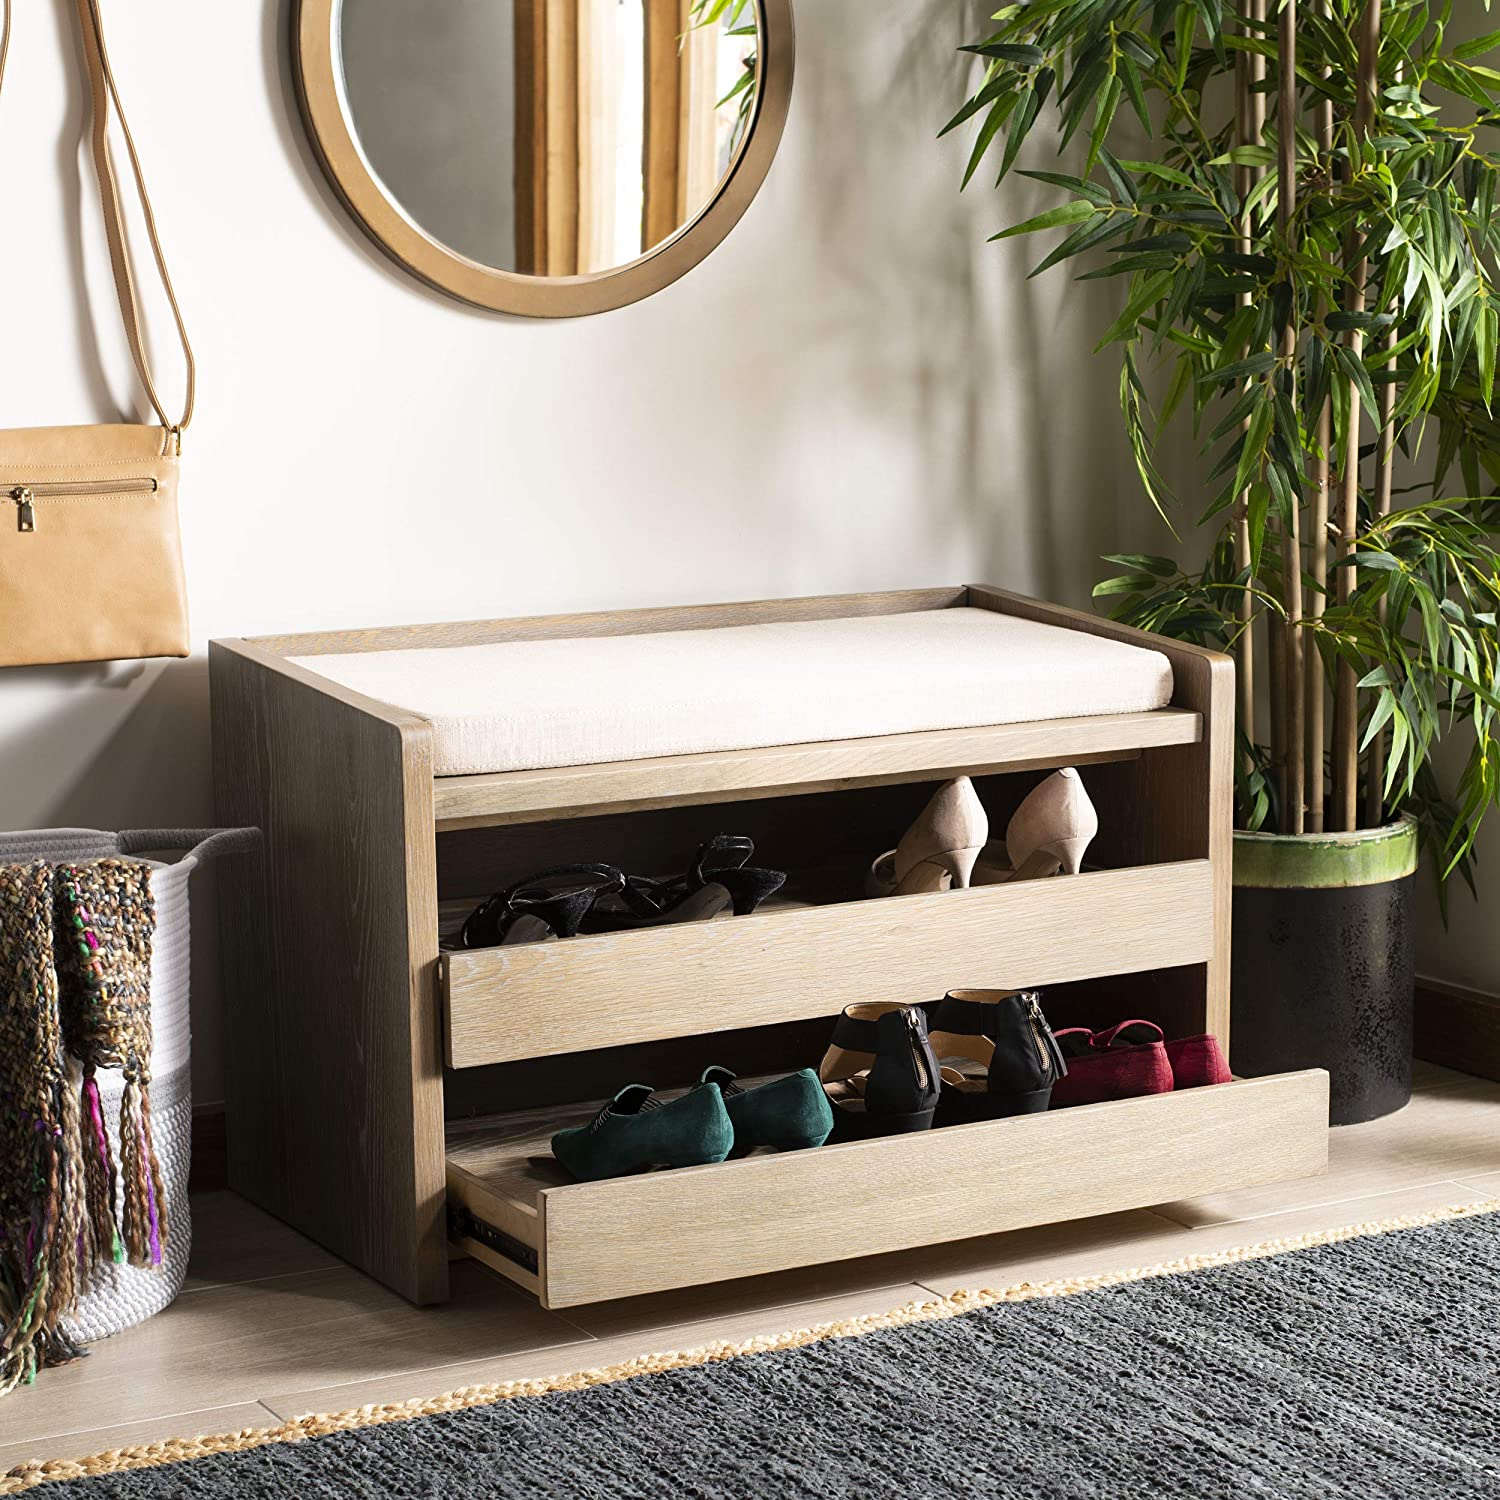 Safavieh Home Percy 31-inch Rustic Oak and Beige Storage Bench